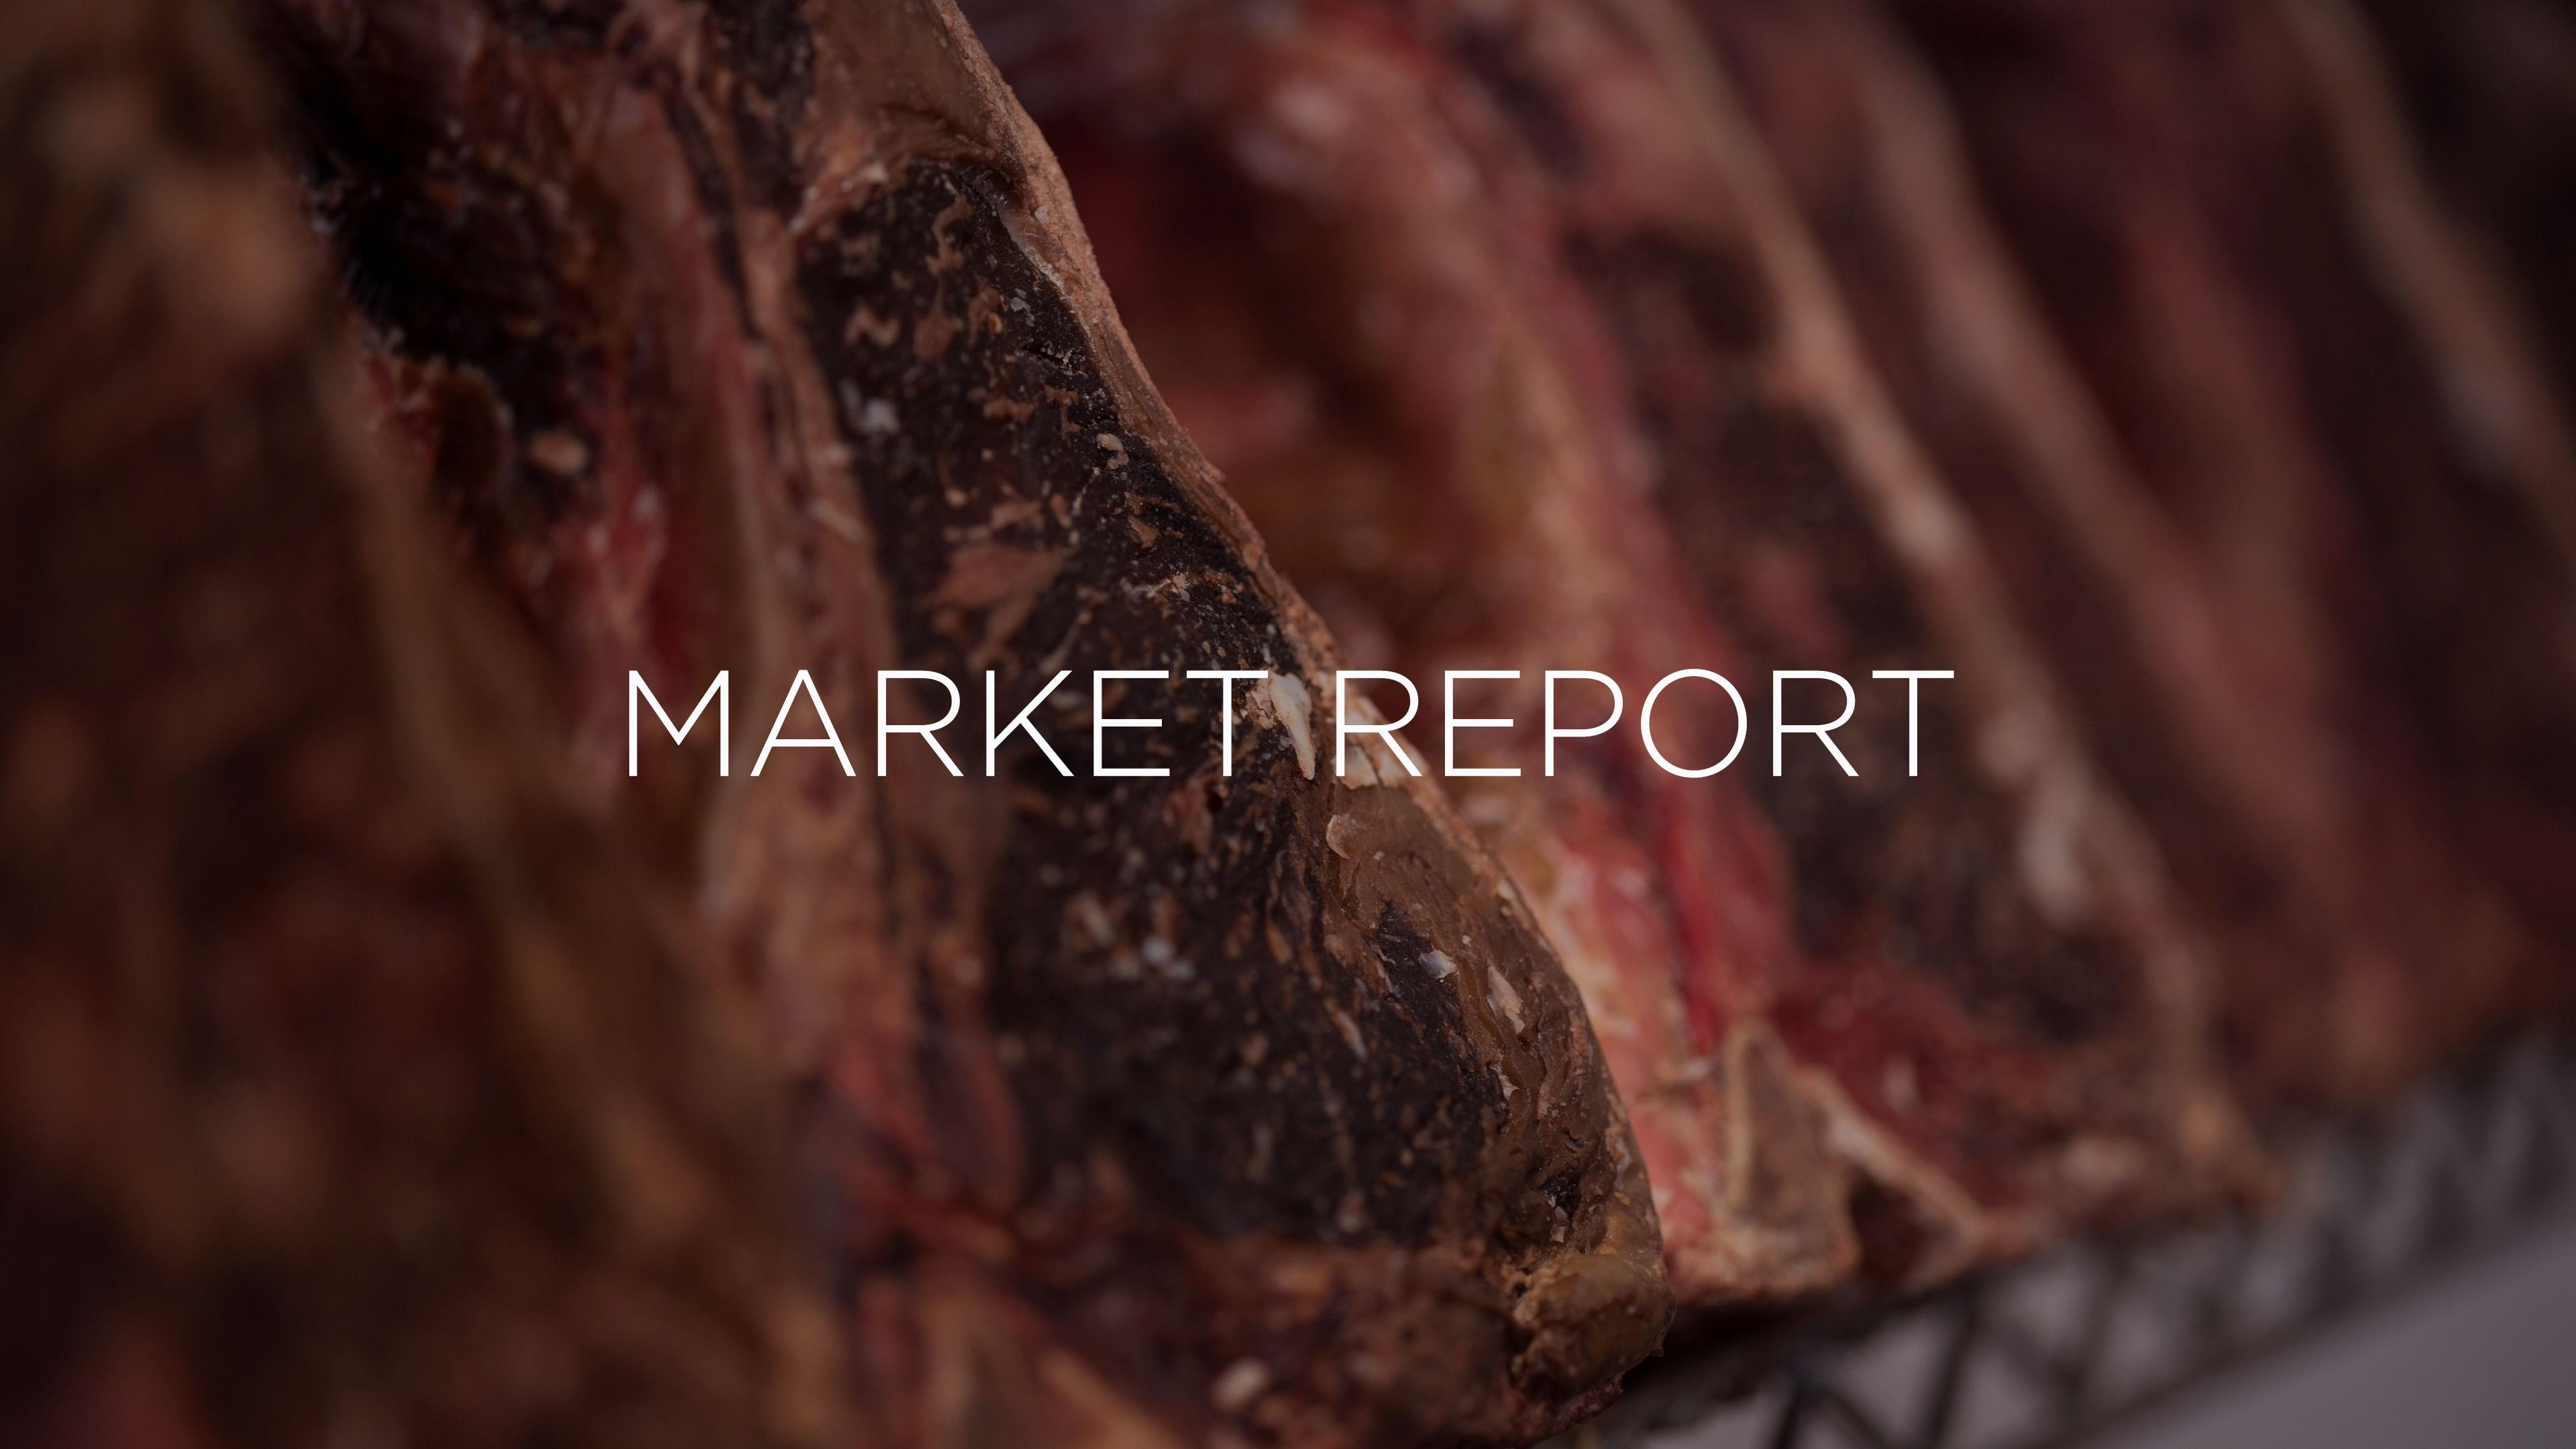 Market Report for August 2018